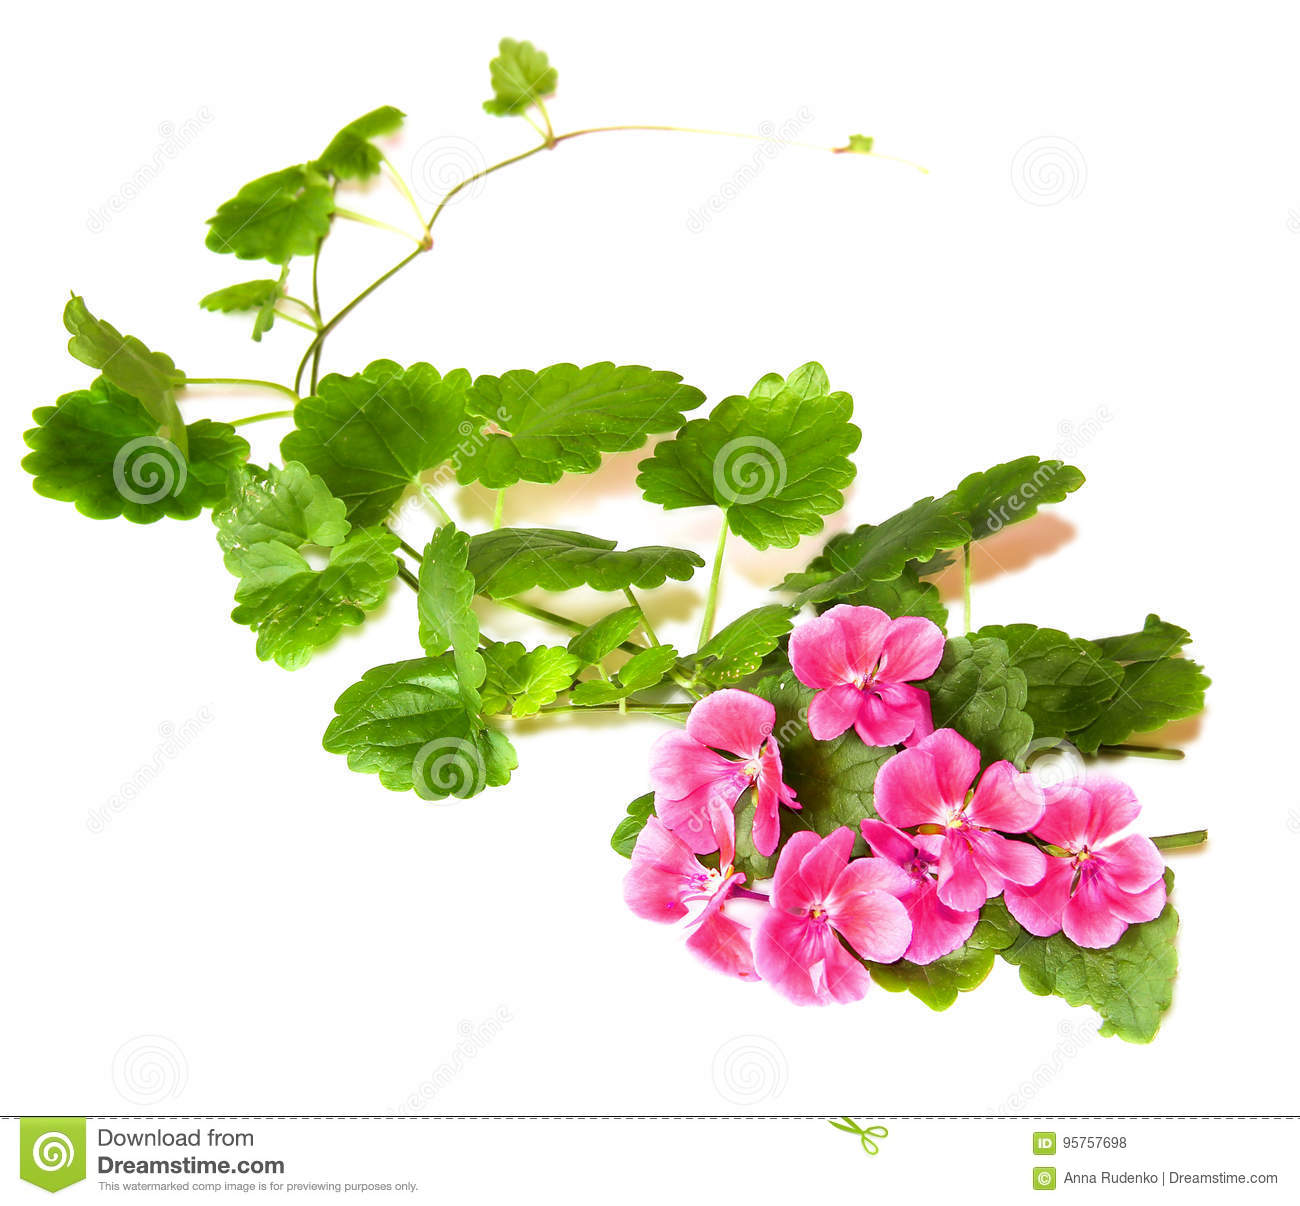 Composition of fresh green leaves of the ground cover and bright